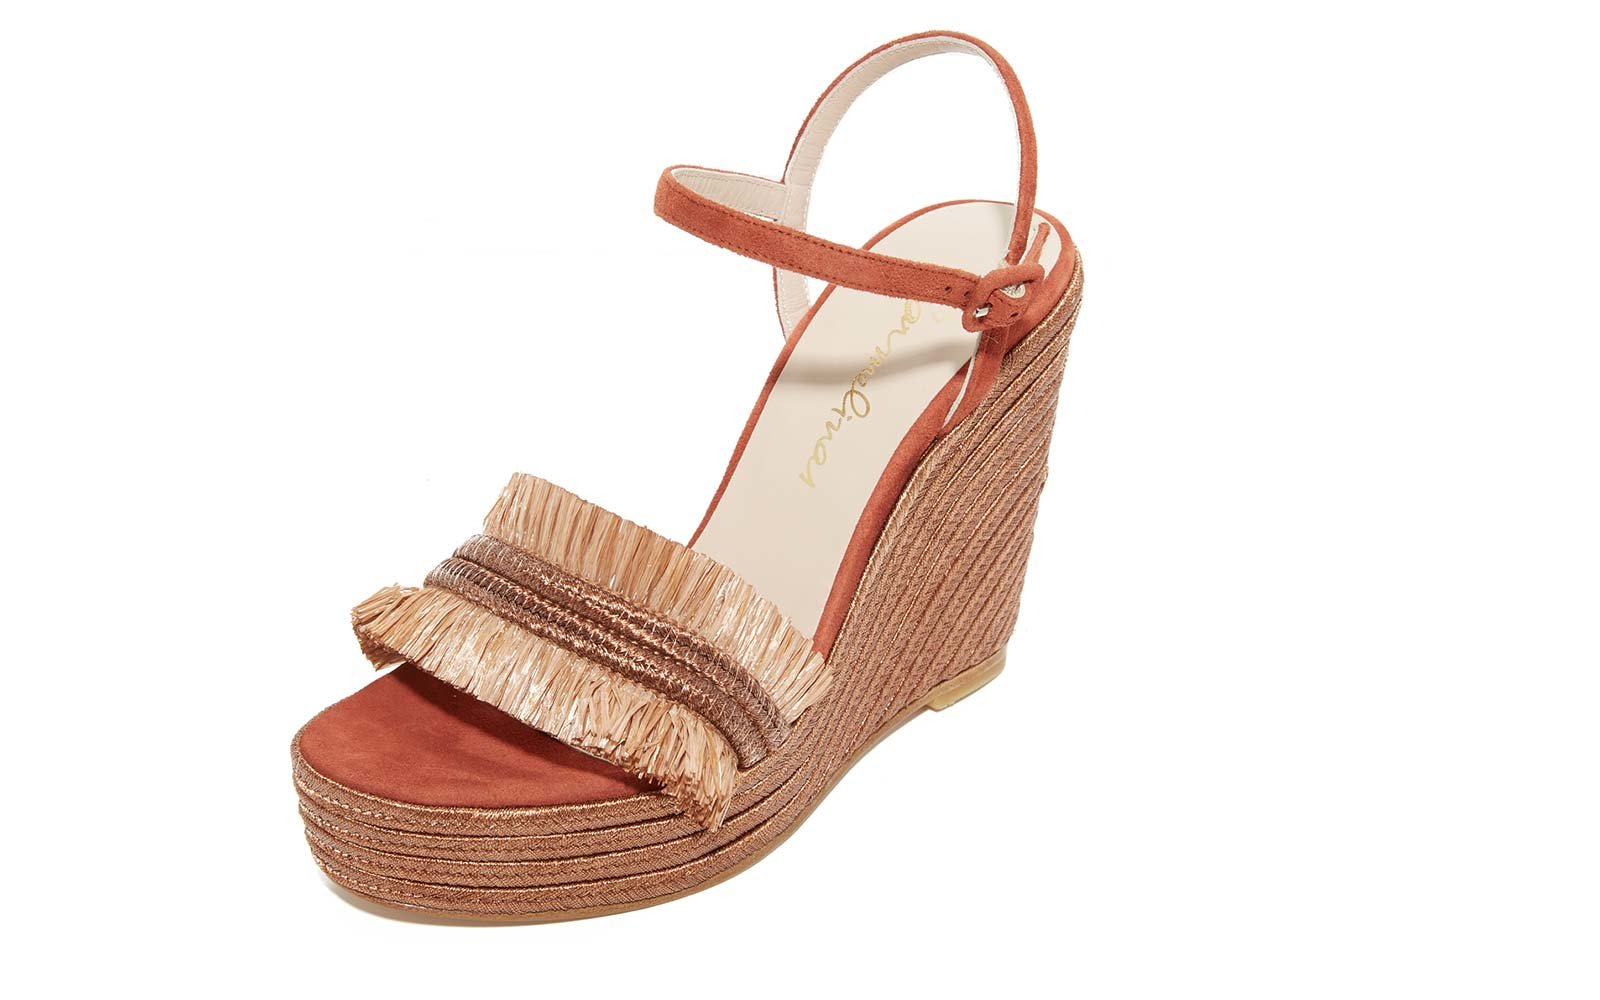 Wear to Go: Carmelinas Mia Platform Sandals